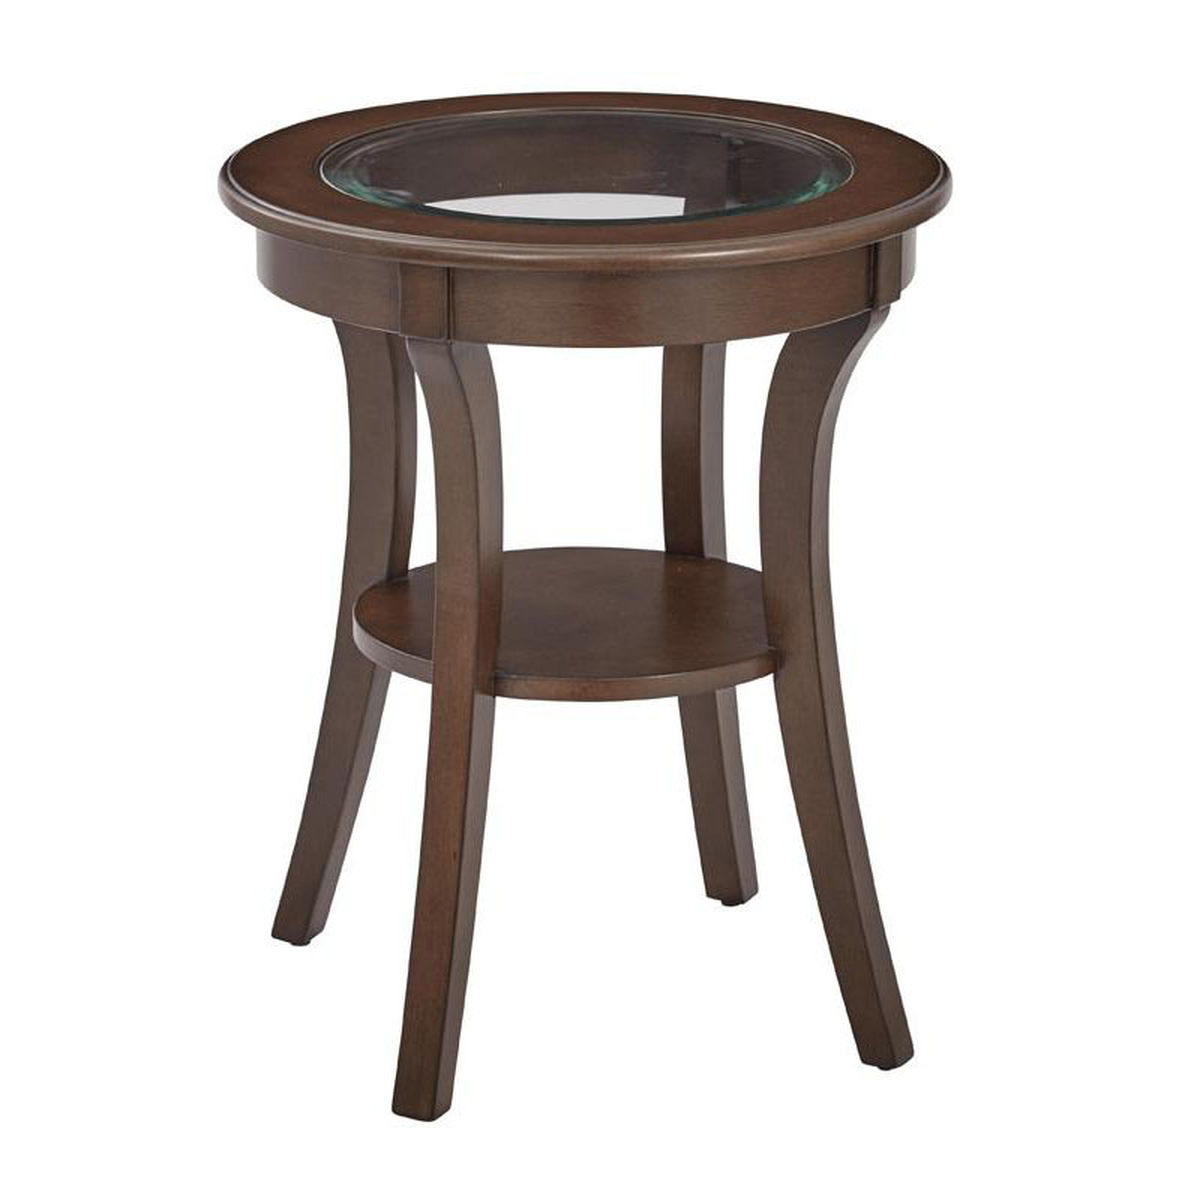 harper macchiato glass accent table bizchair office star products main round top our osp designs with wood finish and shelf navy blue lamp shade square marble tops dale tiffany